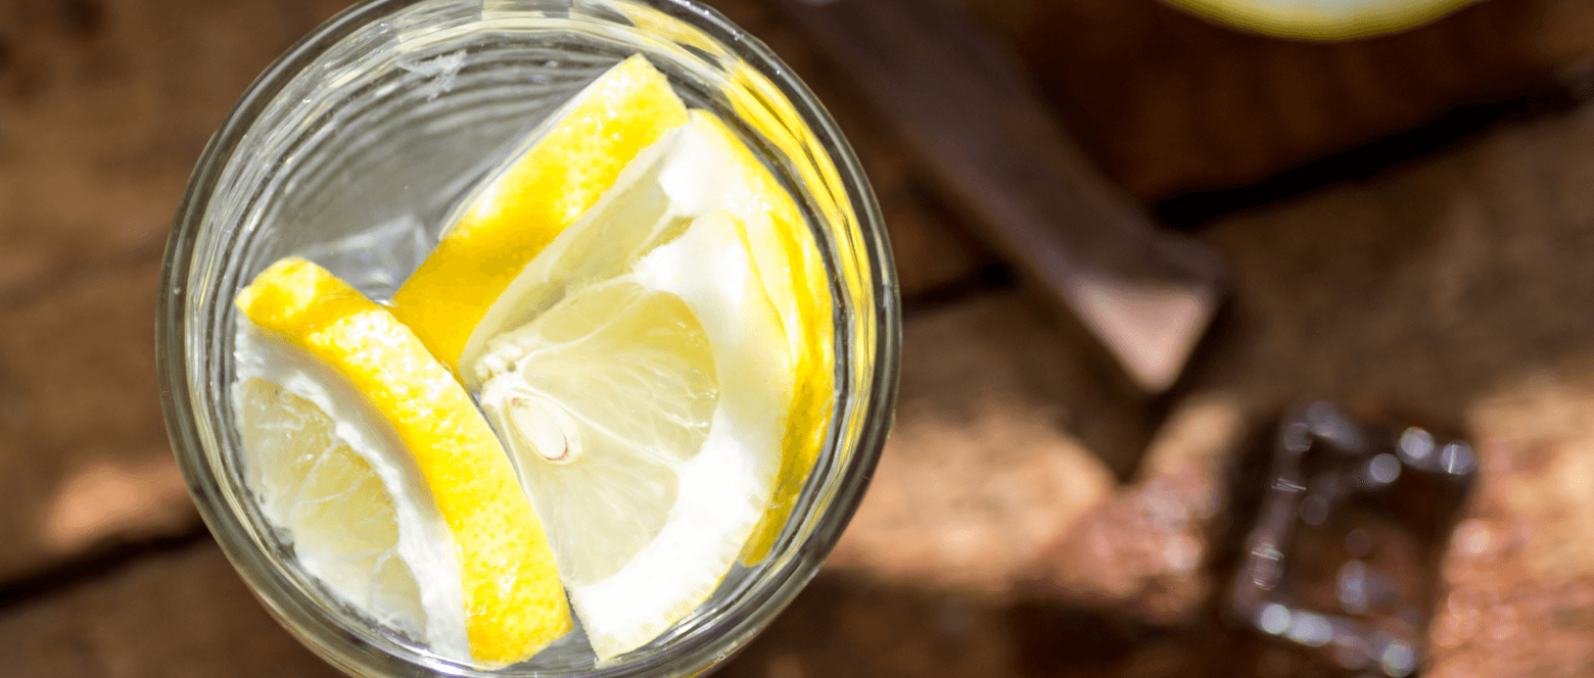 glass with water and lemon